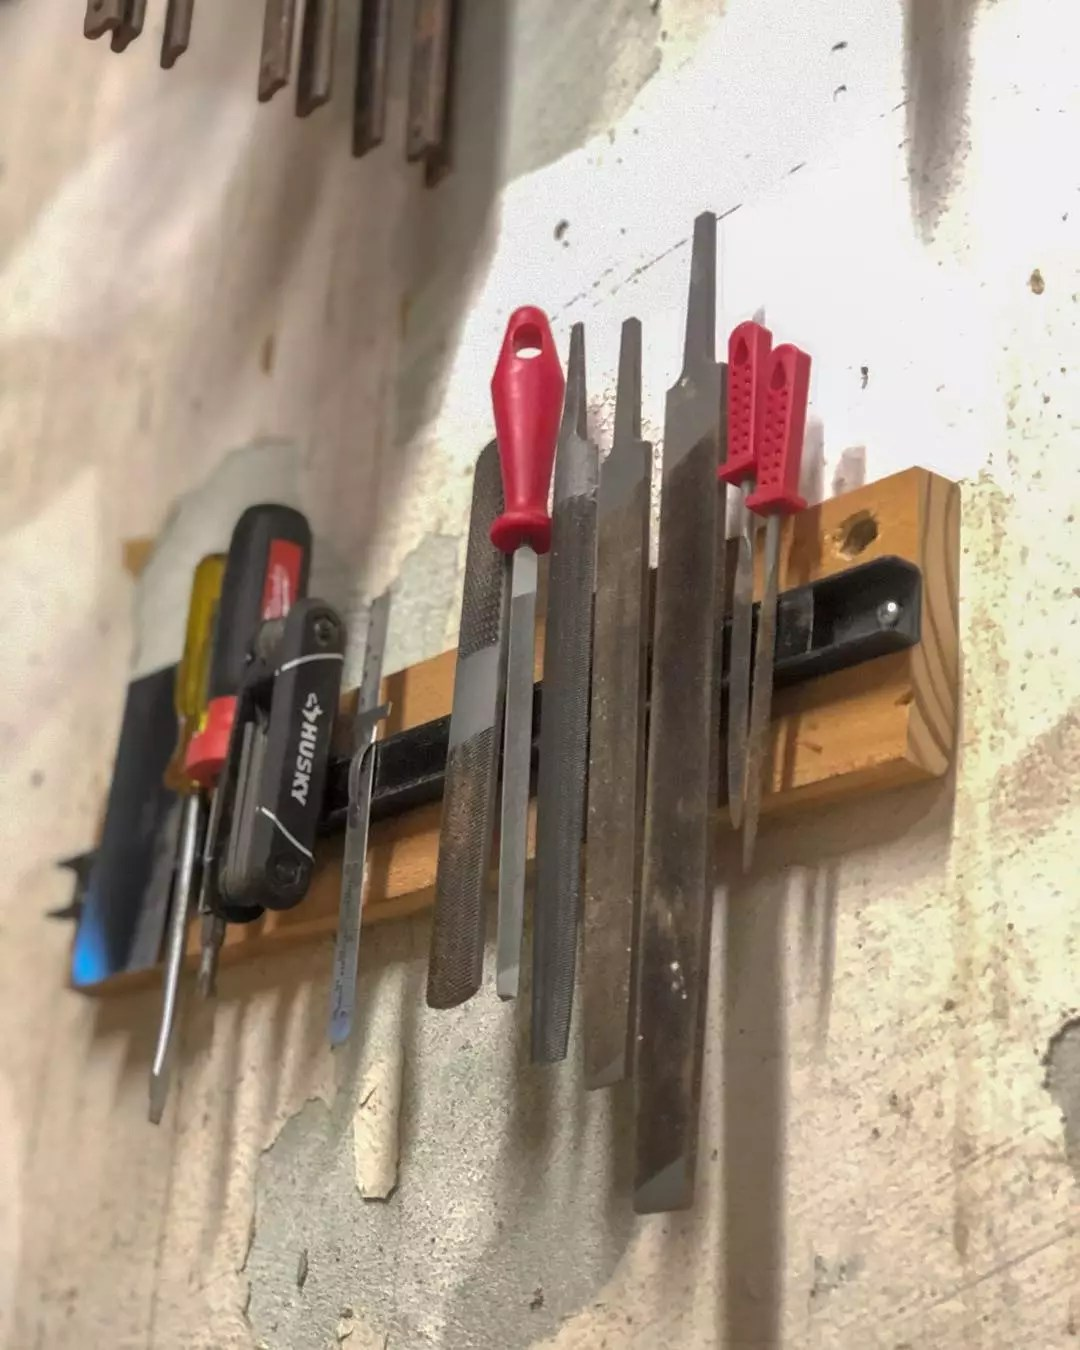 magnetic strip holding extra metal tools photo by Instagram user @cowdogcraftworks